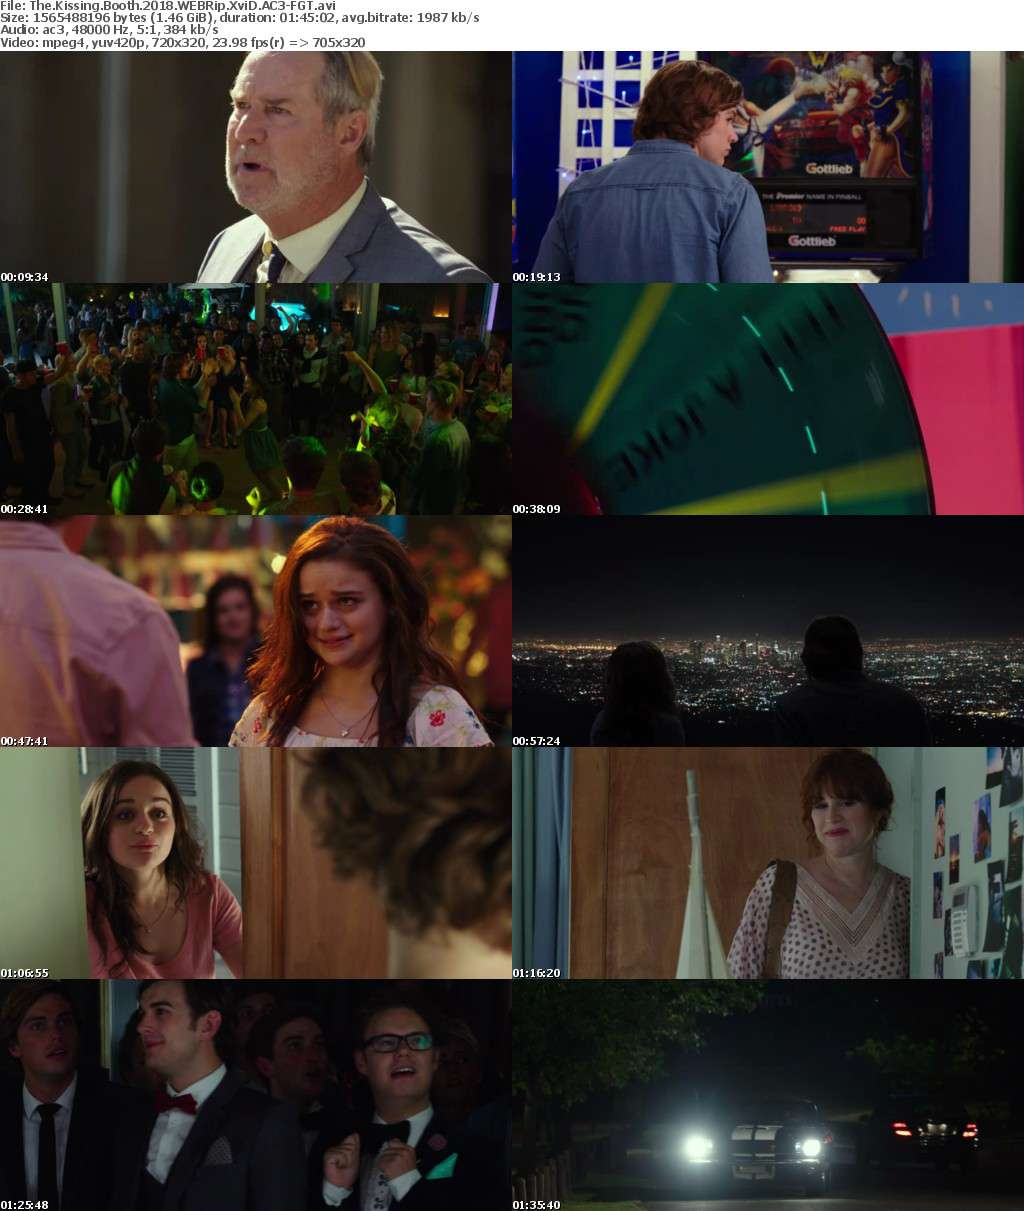 The Kissing Booth 2018 WEBRip XviD AC3-FGT